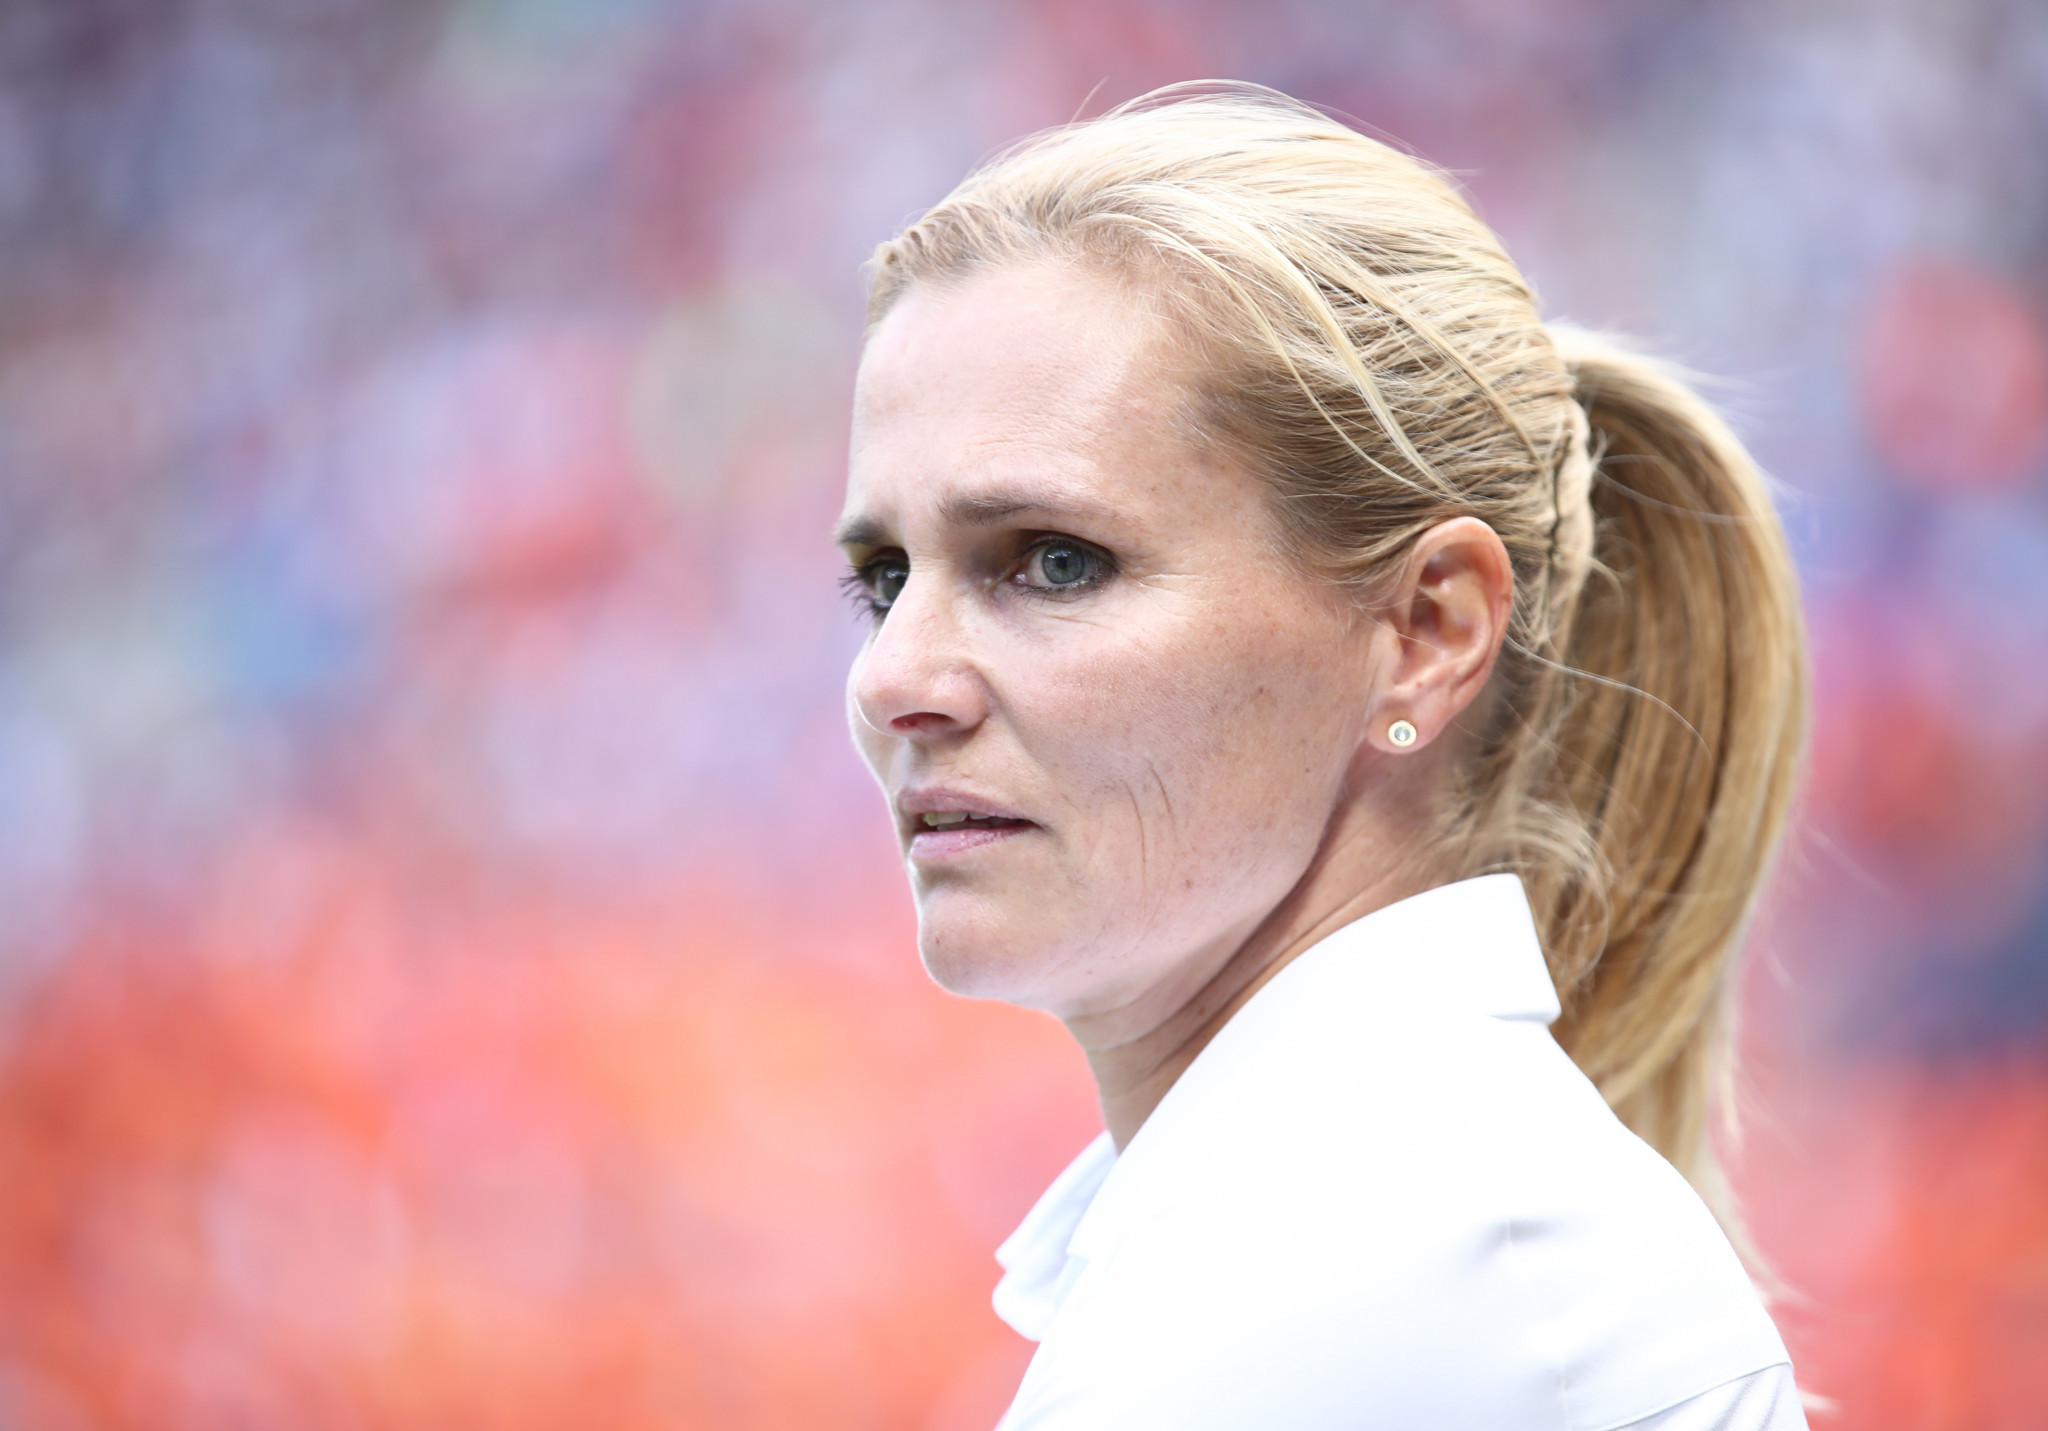 Sarina Wiegman has been one of the most successful international football managers in recent years ©Getty Images